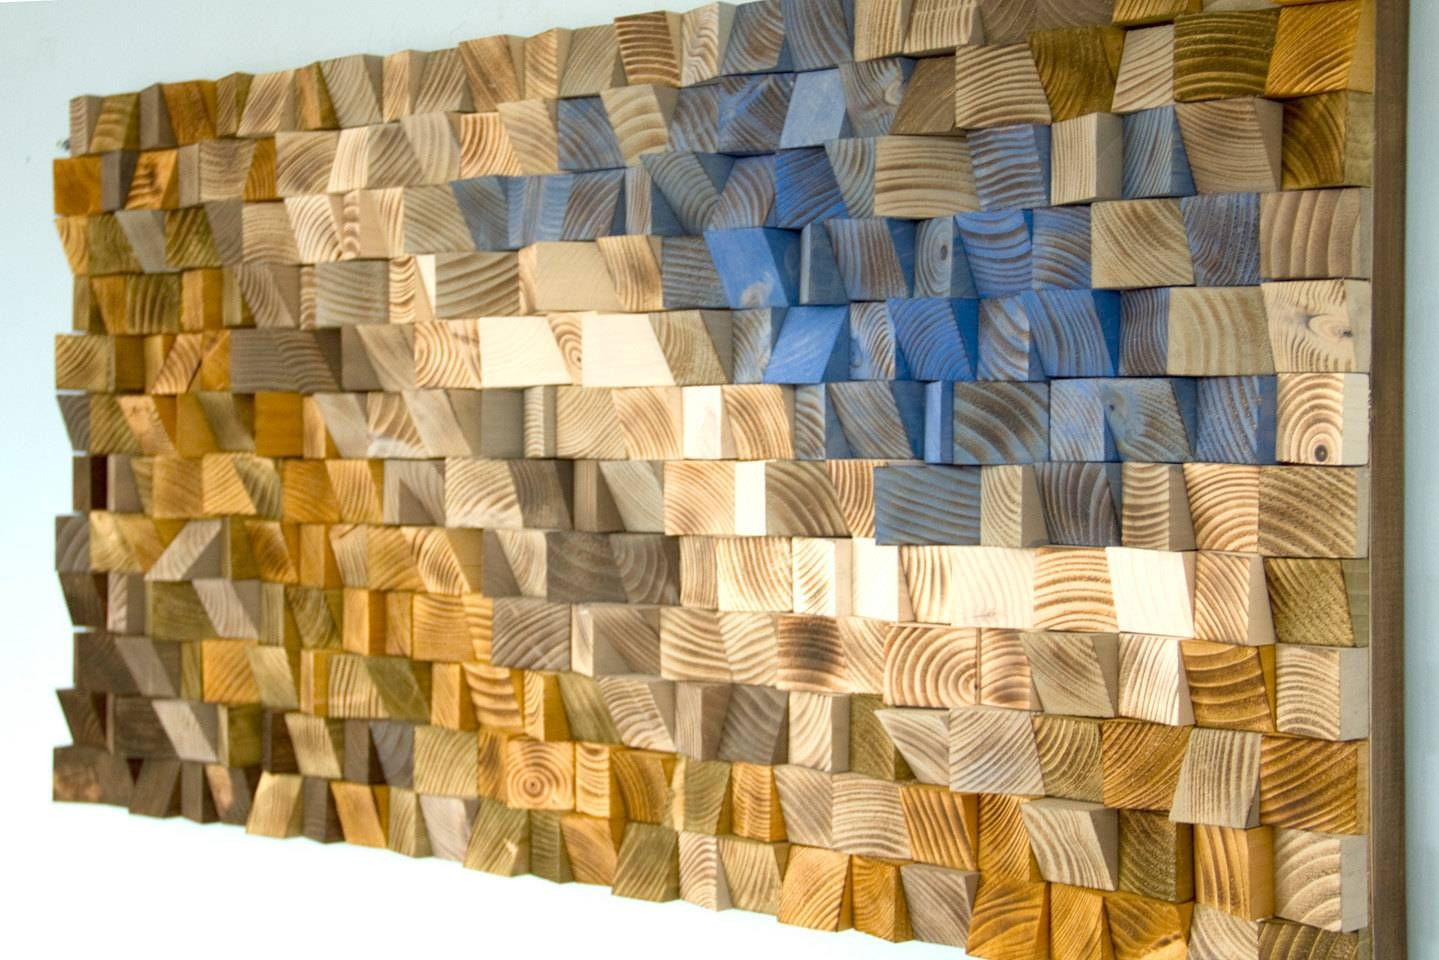 Reclaimed Wood Wall Art, Wood Mosaic, Geometric Art, Wood Wall Art Inside Most Recent Wood Wall Art (View 14 of 25)